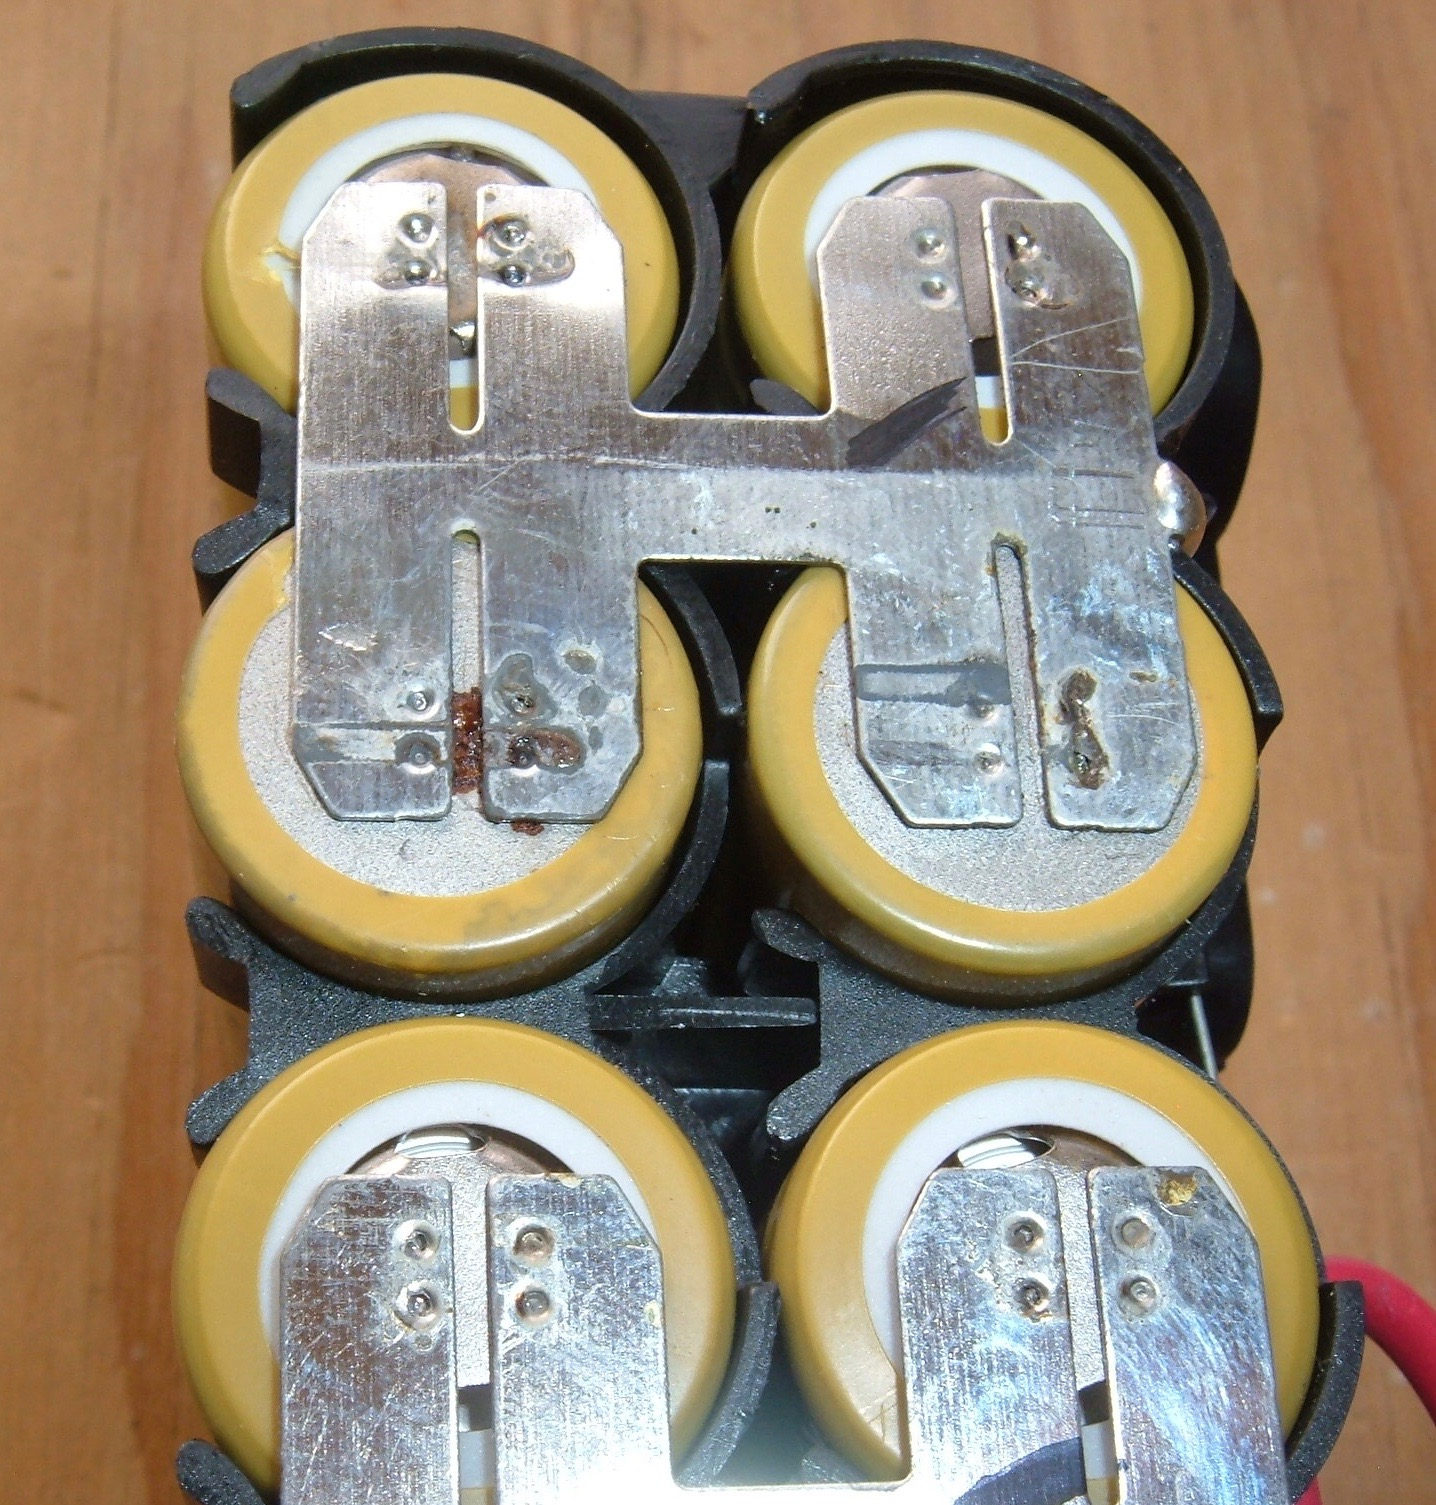 Syonyks Project Blog Dewalt 20v Max 30ah Battery Pack Teardown The Kill Switch Be Hooked Up Positive Or Negative To Its A Hair Under 0012 So 030mm Twice As Thick Common 015mm Nickel Strip Used In Ebike